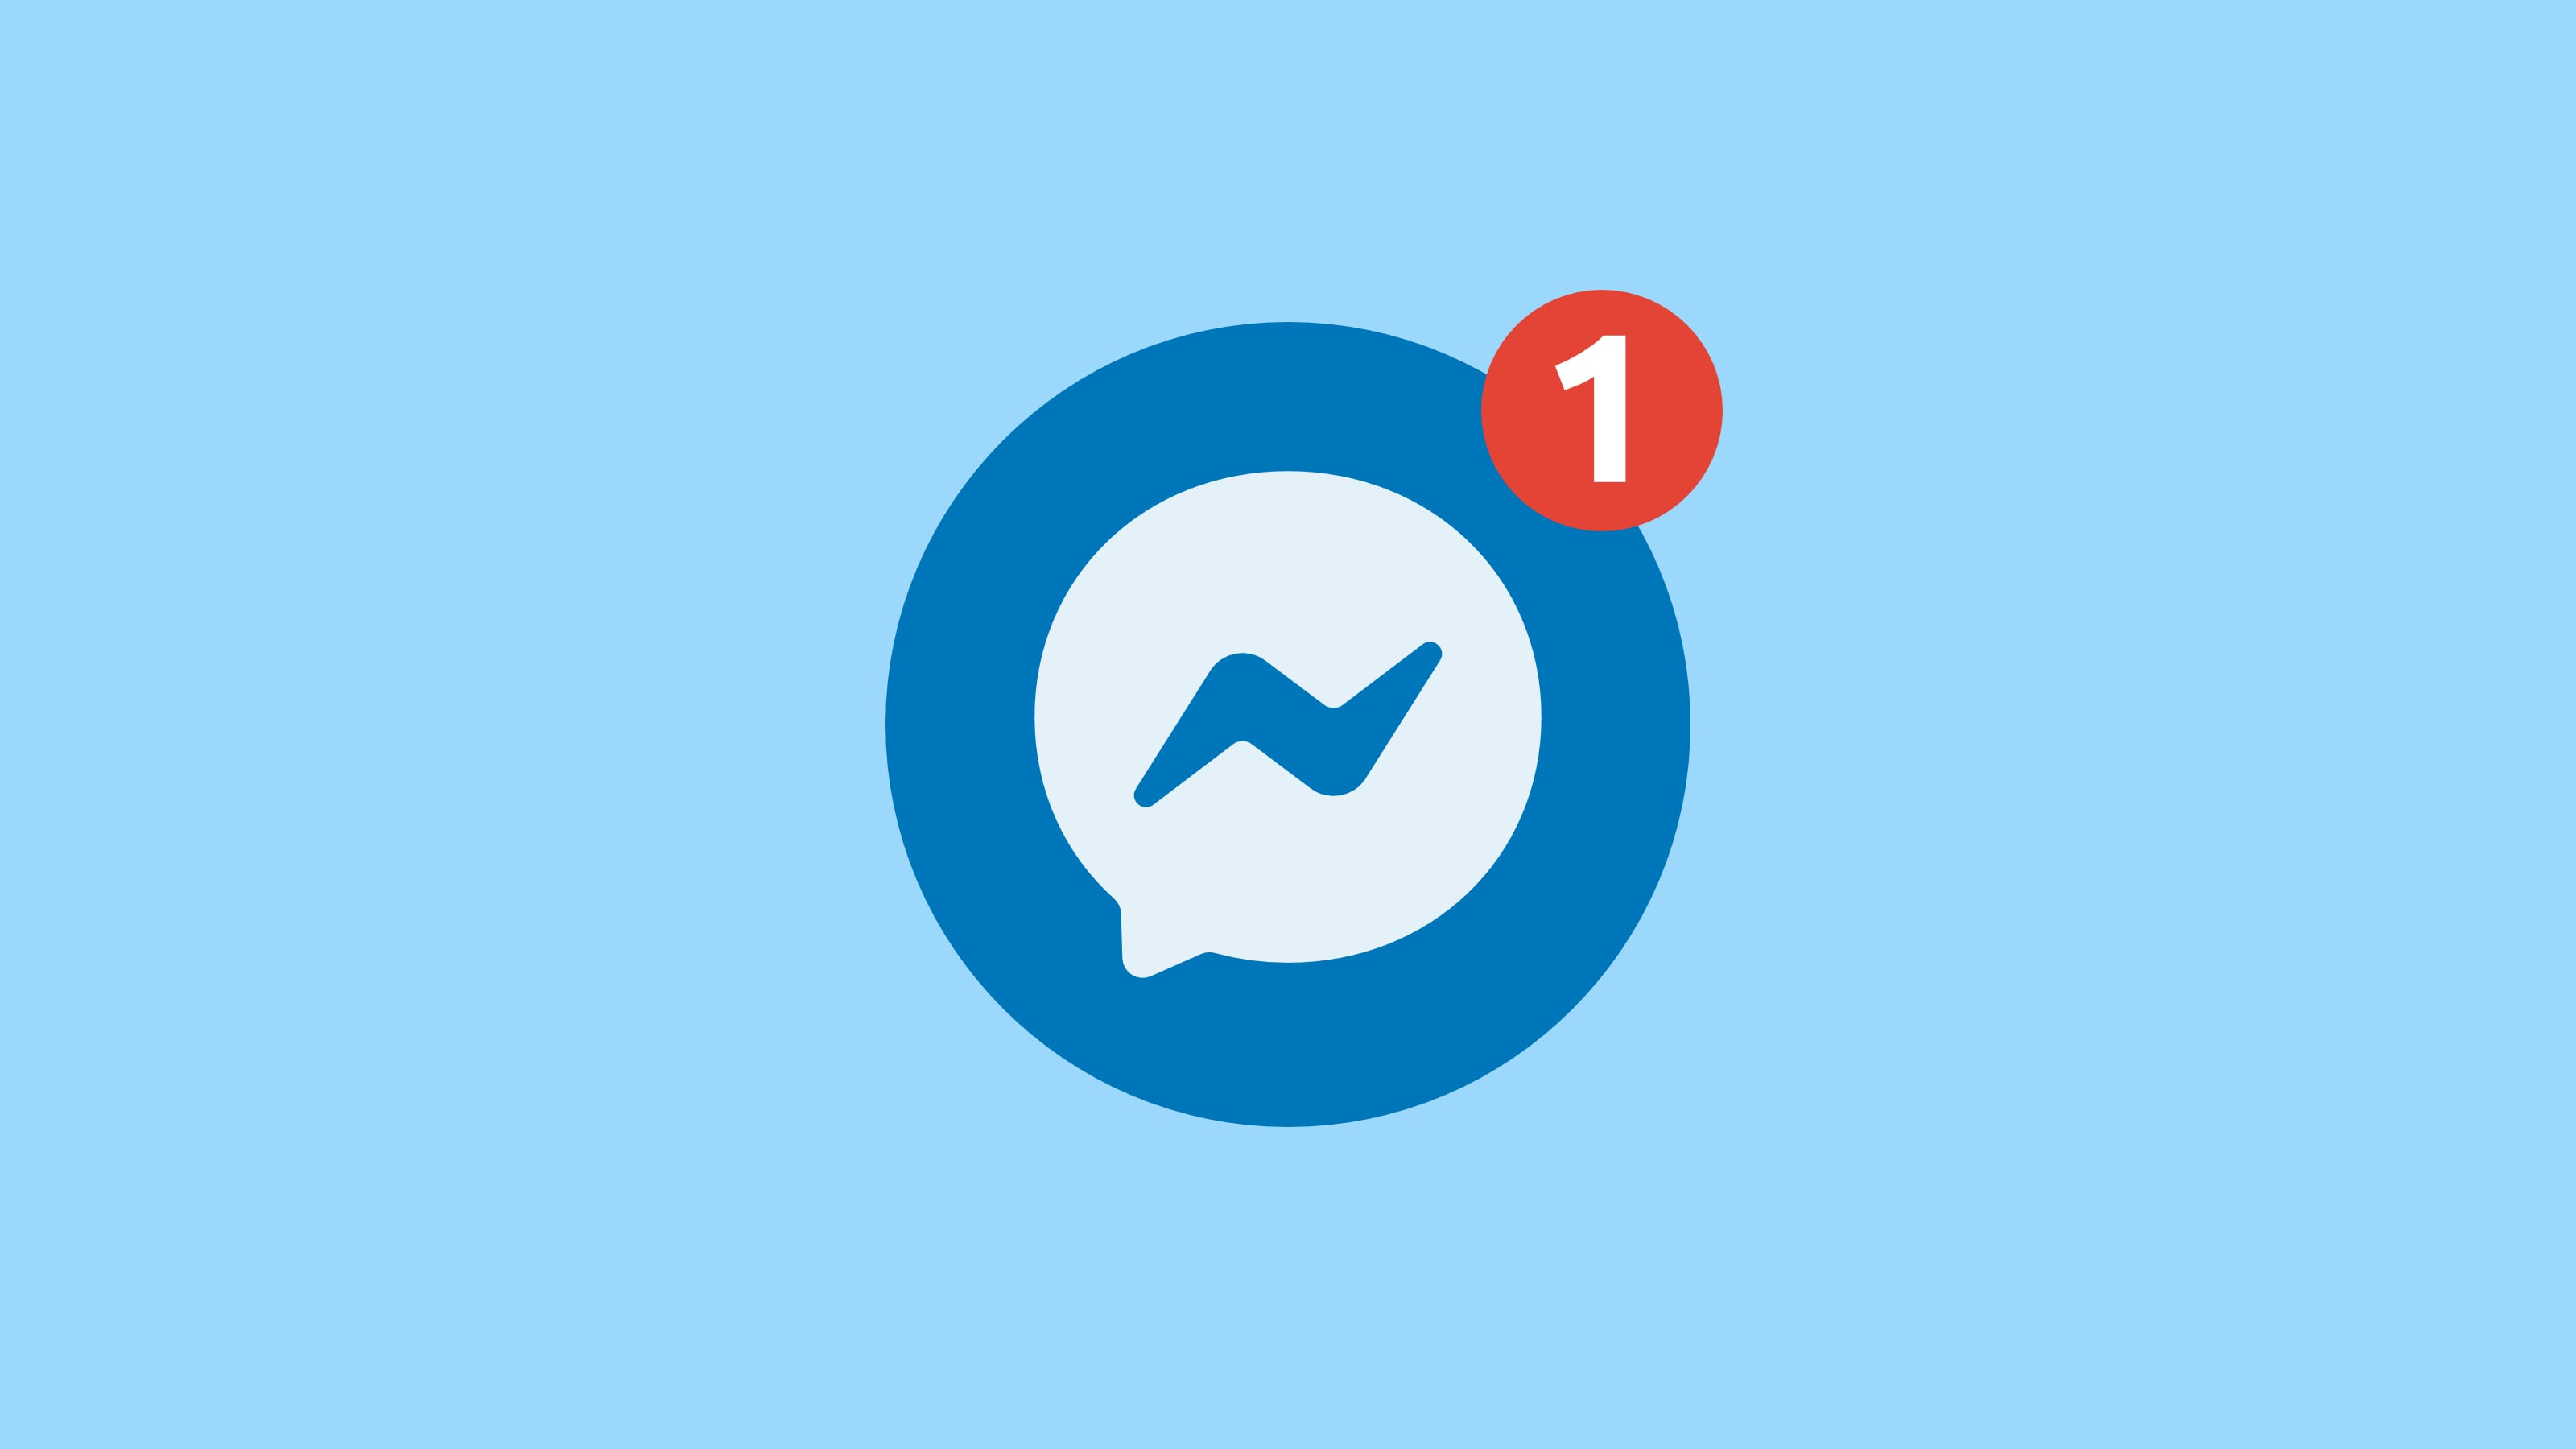 Facebook's Messenger added a host of new features to it, like Messenger Rooms, in an attempt to keep up with video calling apps like Zoom. The Messenger was the 5th most downloaded app of May 2020.